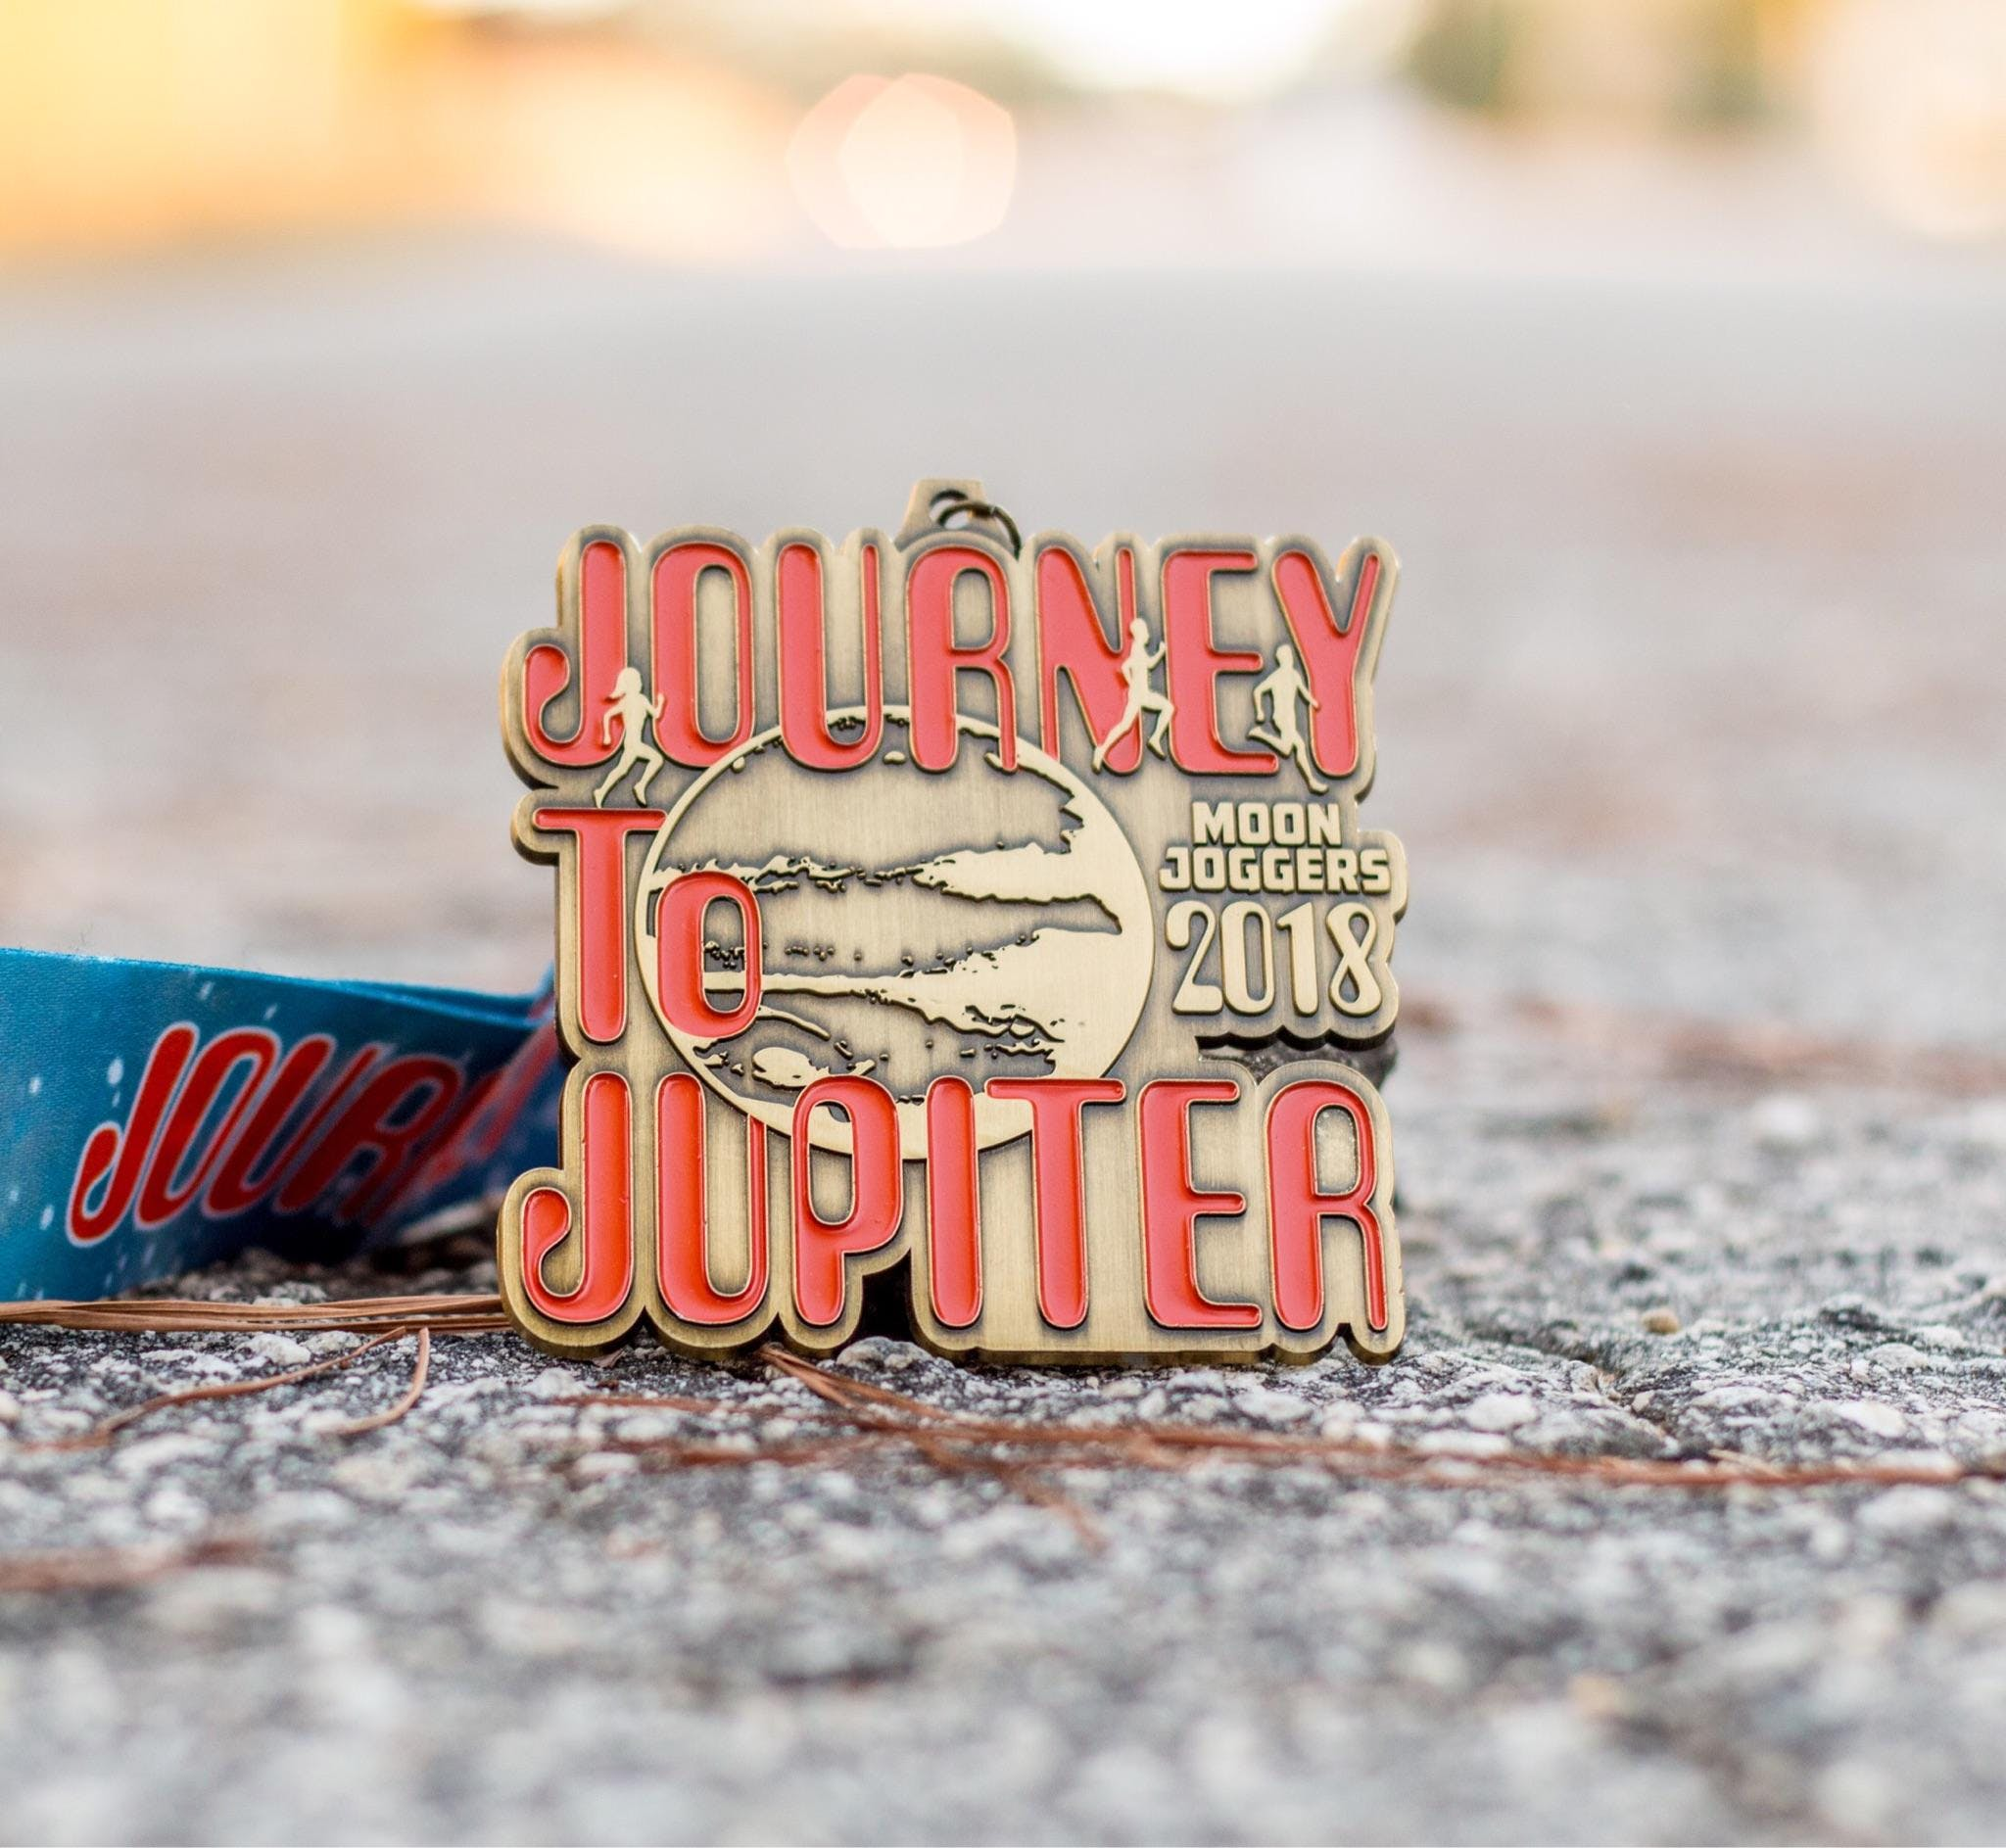 FREE SIGN UP: Journey to Jupiter Running & Walking Challenge 2018 -Chandler